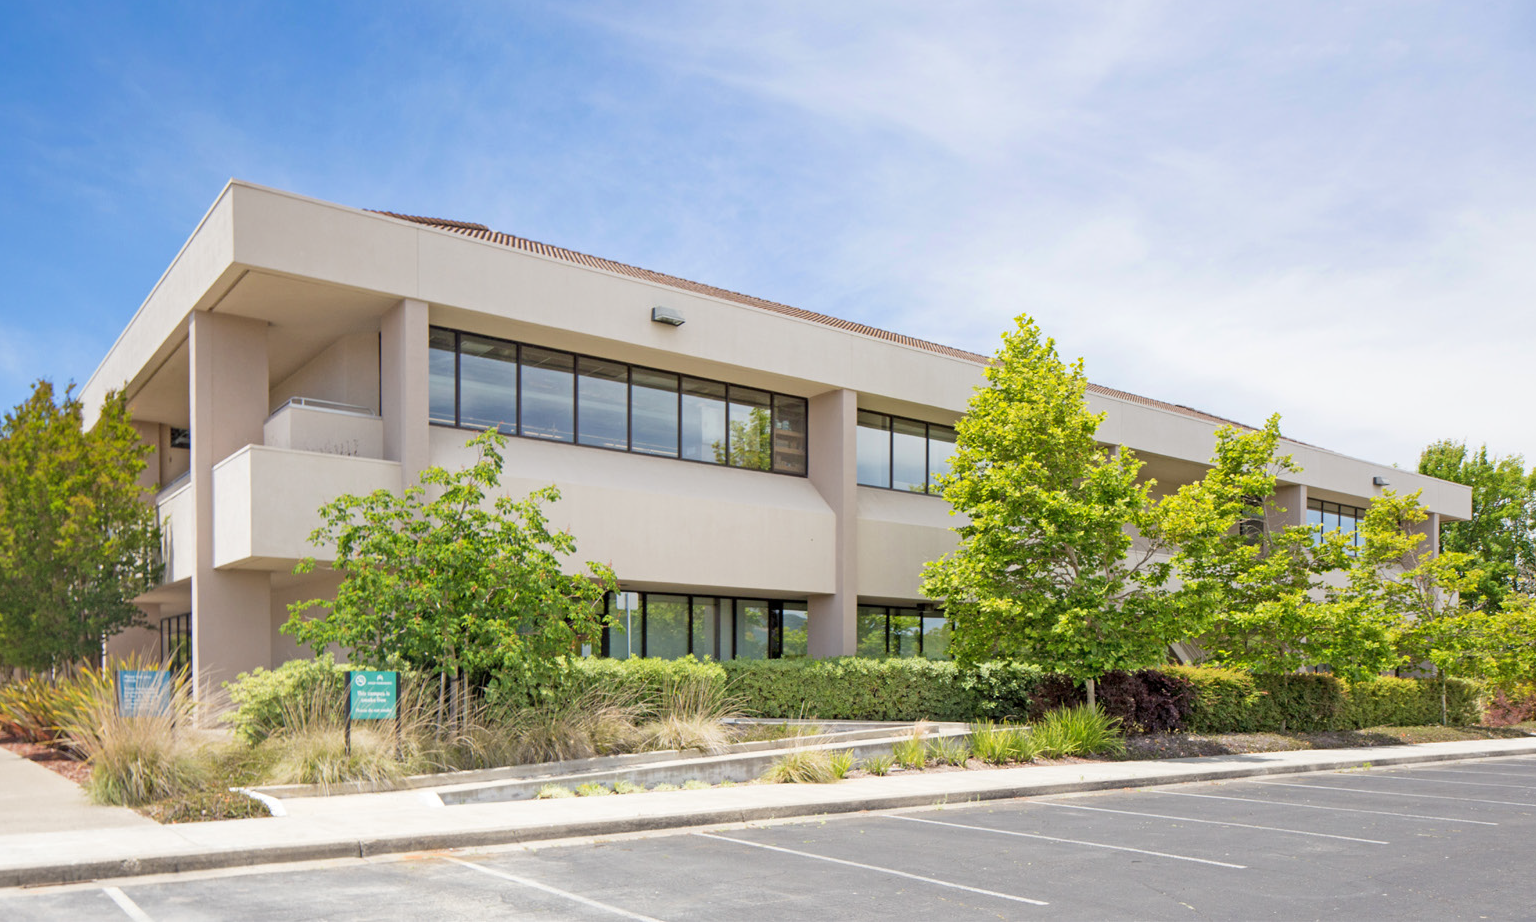 5900 State Farm Drive, Rohnert Park, CA 94928 68,094 SF Medical Office Building $21,500,000